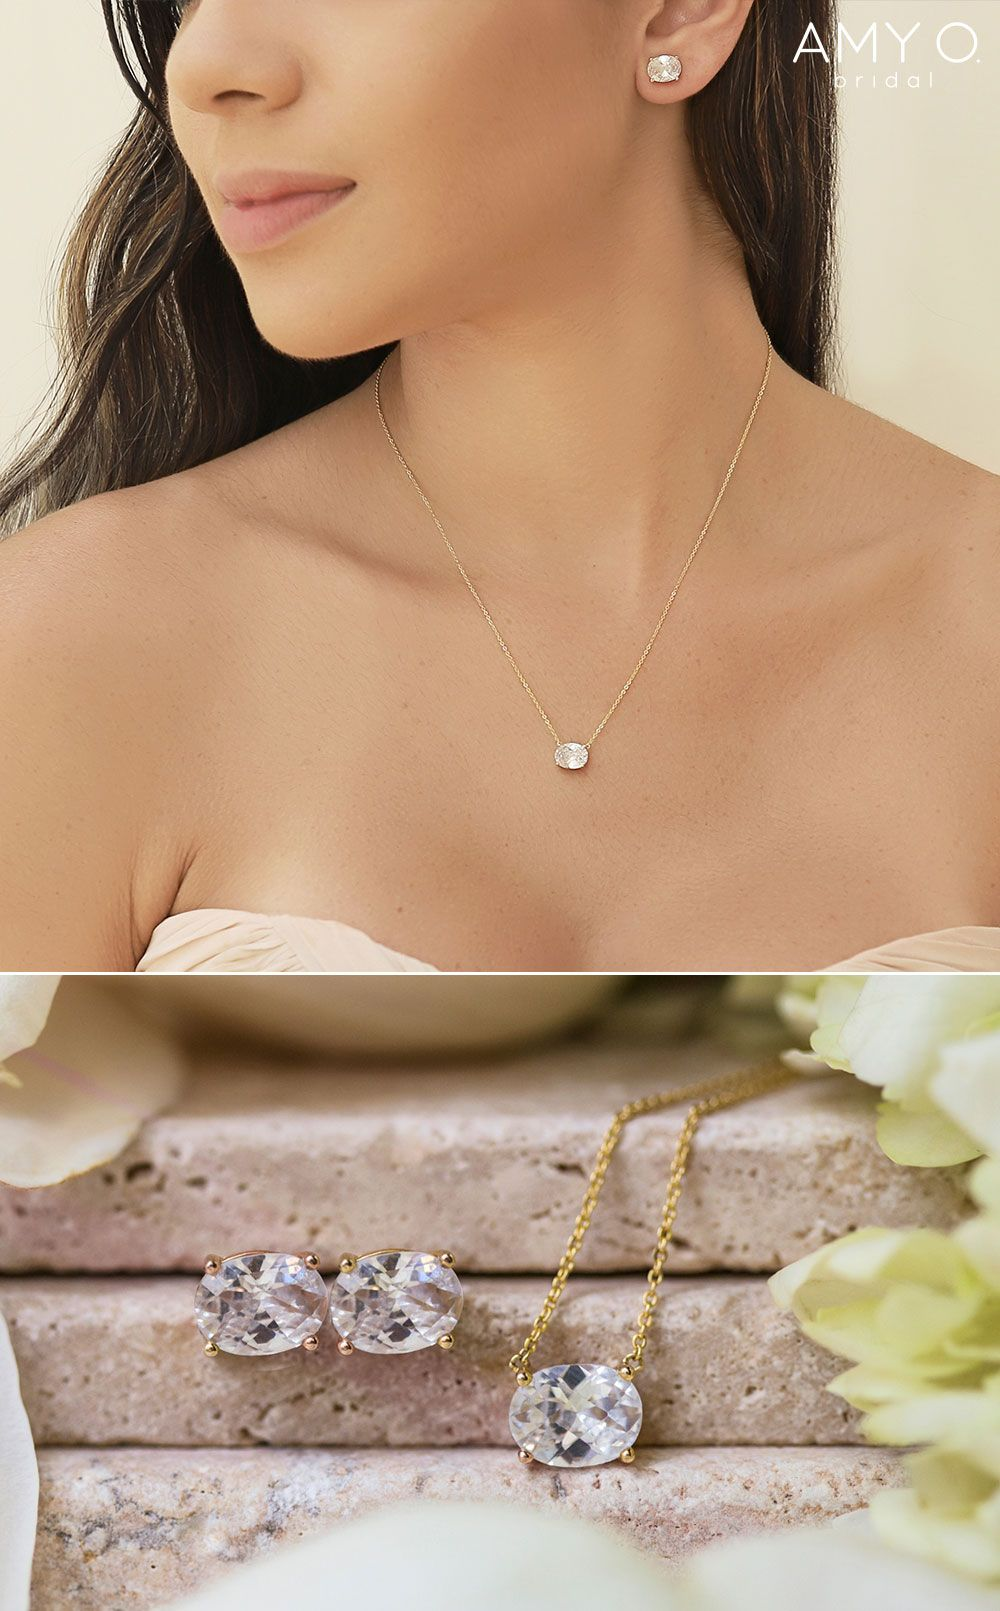 Wedding Jewelry for Brides Crystal Bridal Necklace and Earrings Set Classic Oval CZ Diamond Pendant and Studs